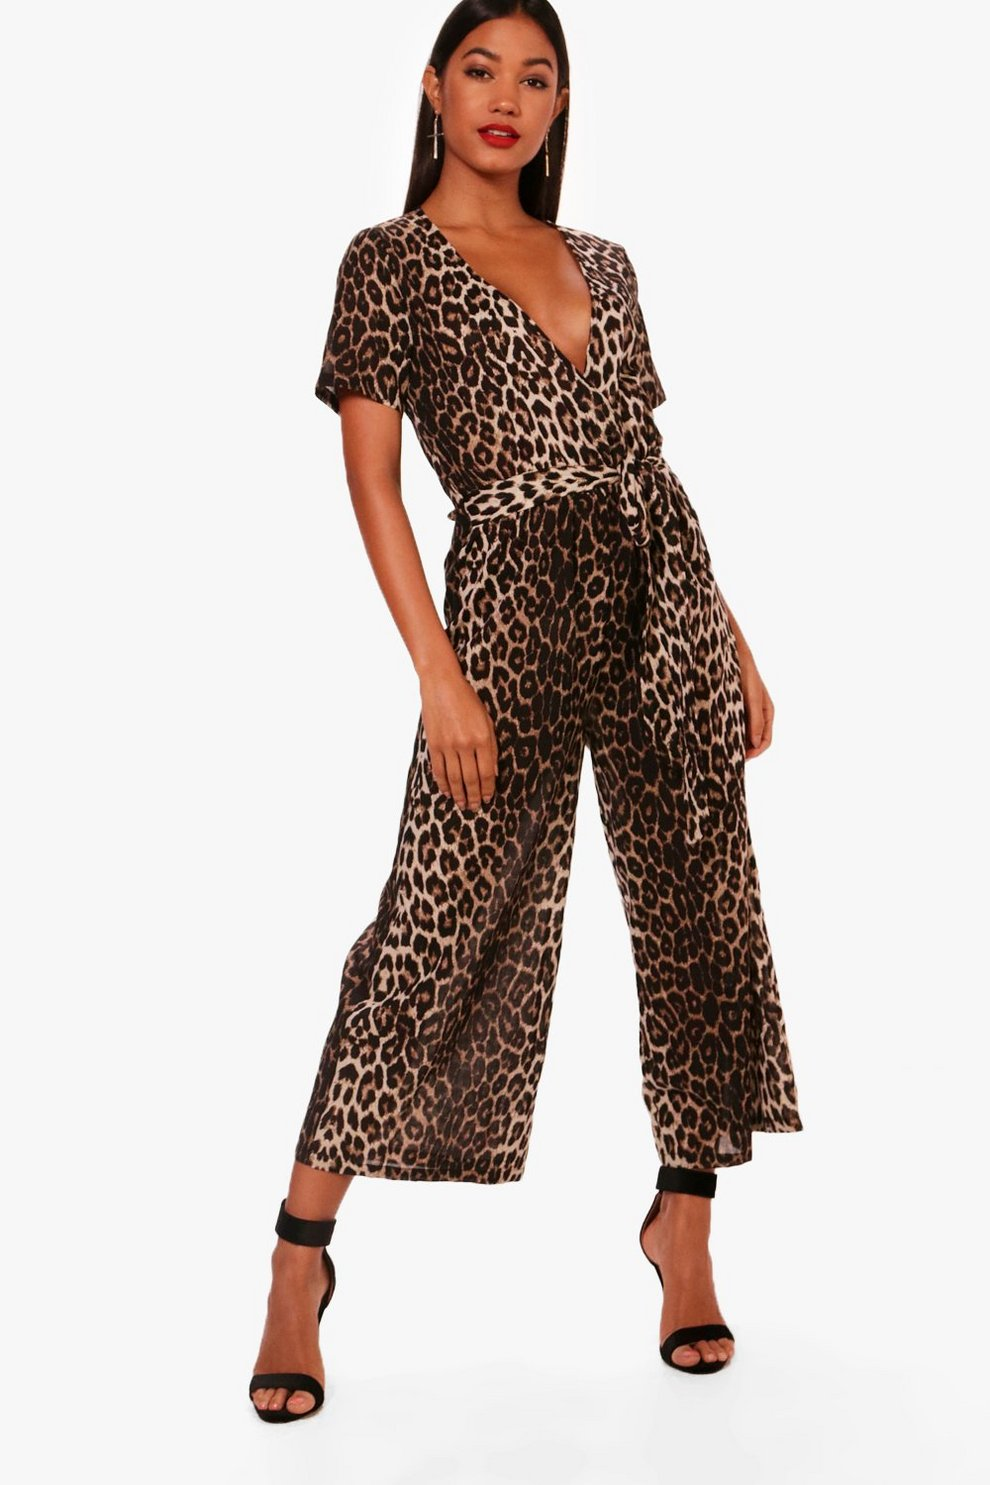 Best For Sale Cheap Visit New Boohoo Cut Front Leopard Jumpsuit Footlocker Finishline Cheap Online Manchester Cheap Online 3oR9zDaNd0